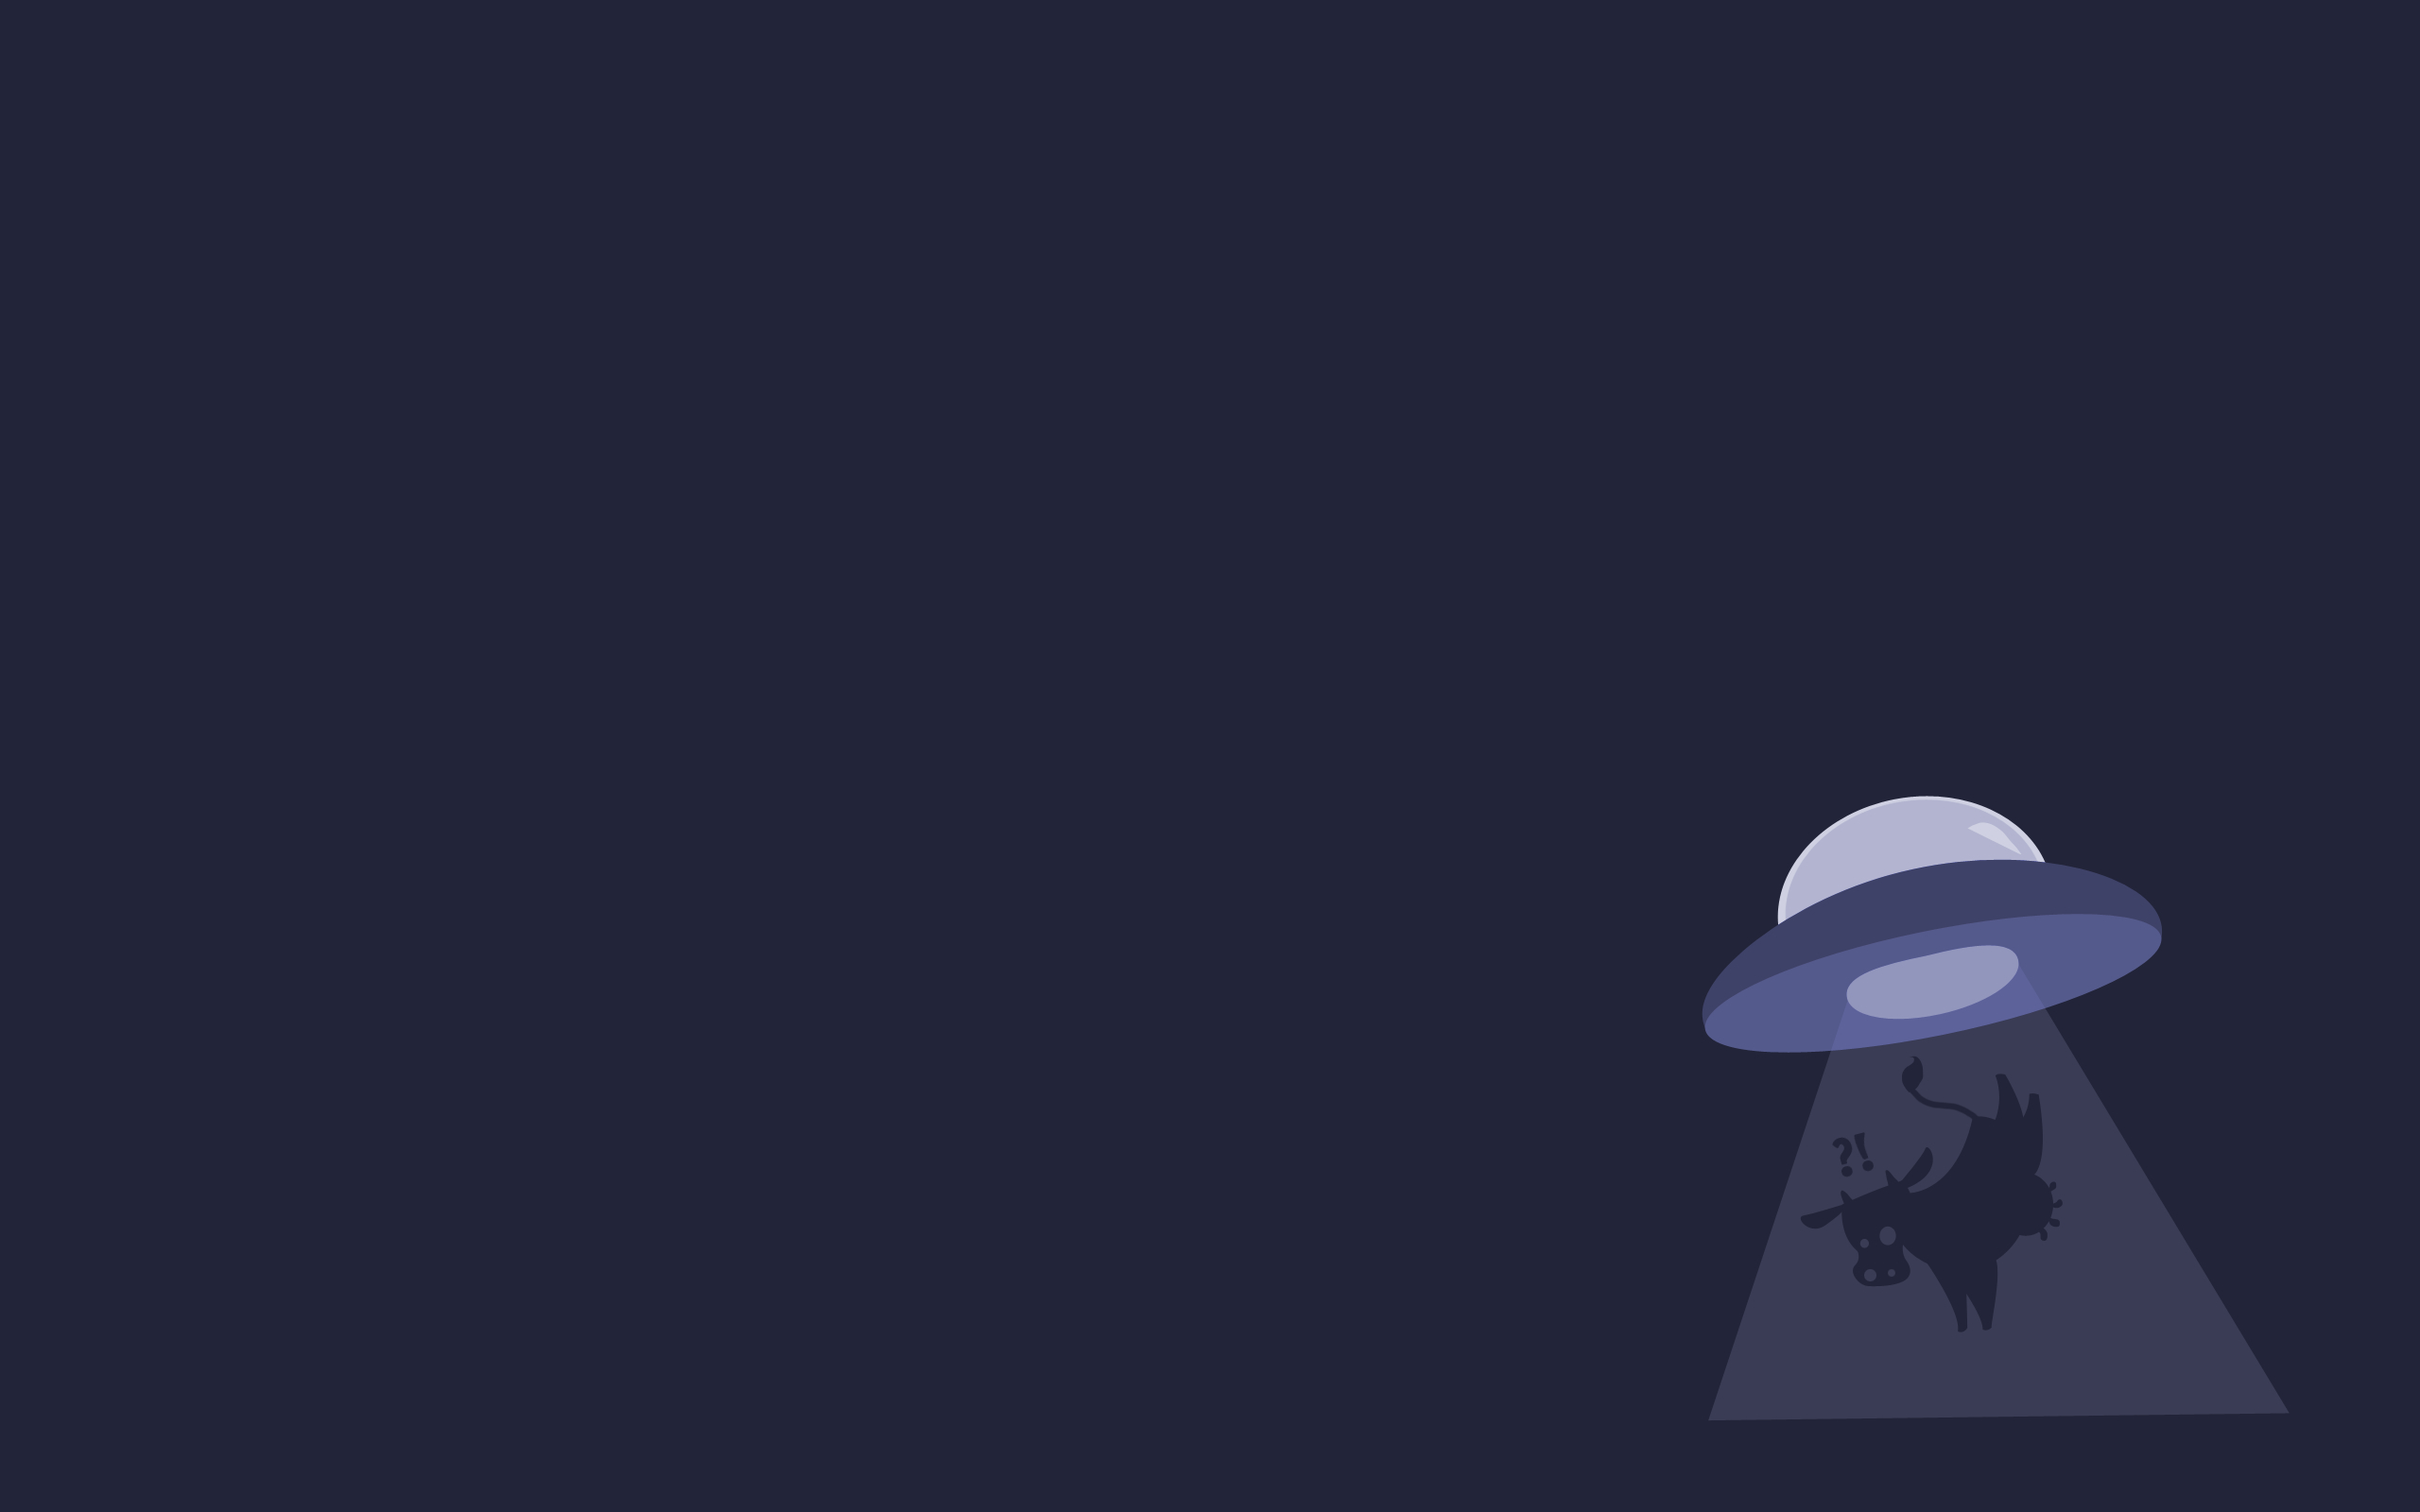 minimalistic gentoo Cows UFO HD Wallpaper